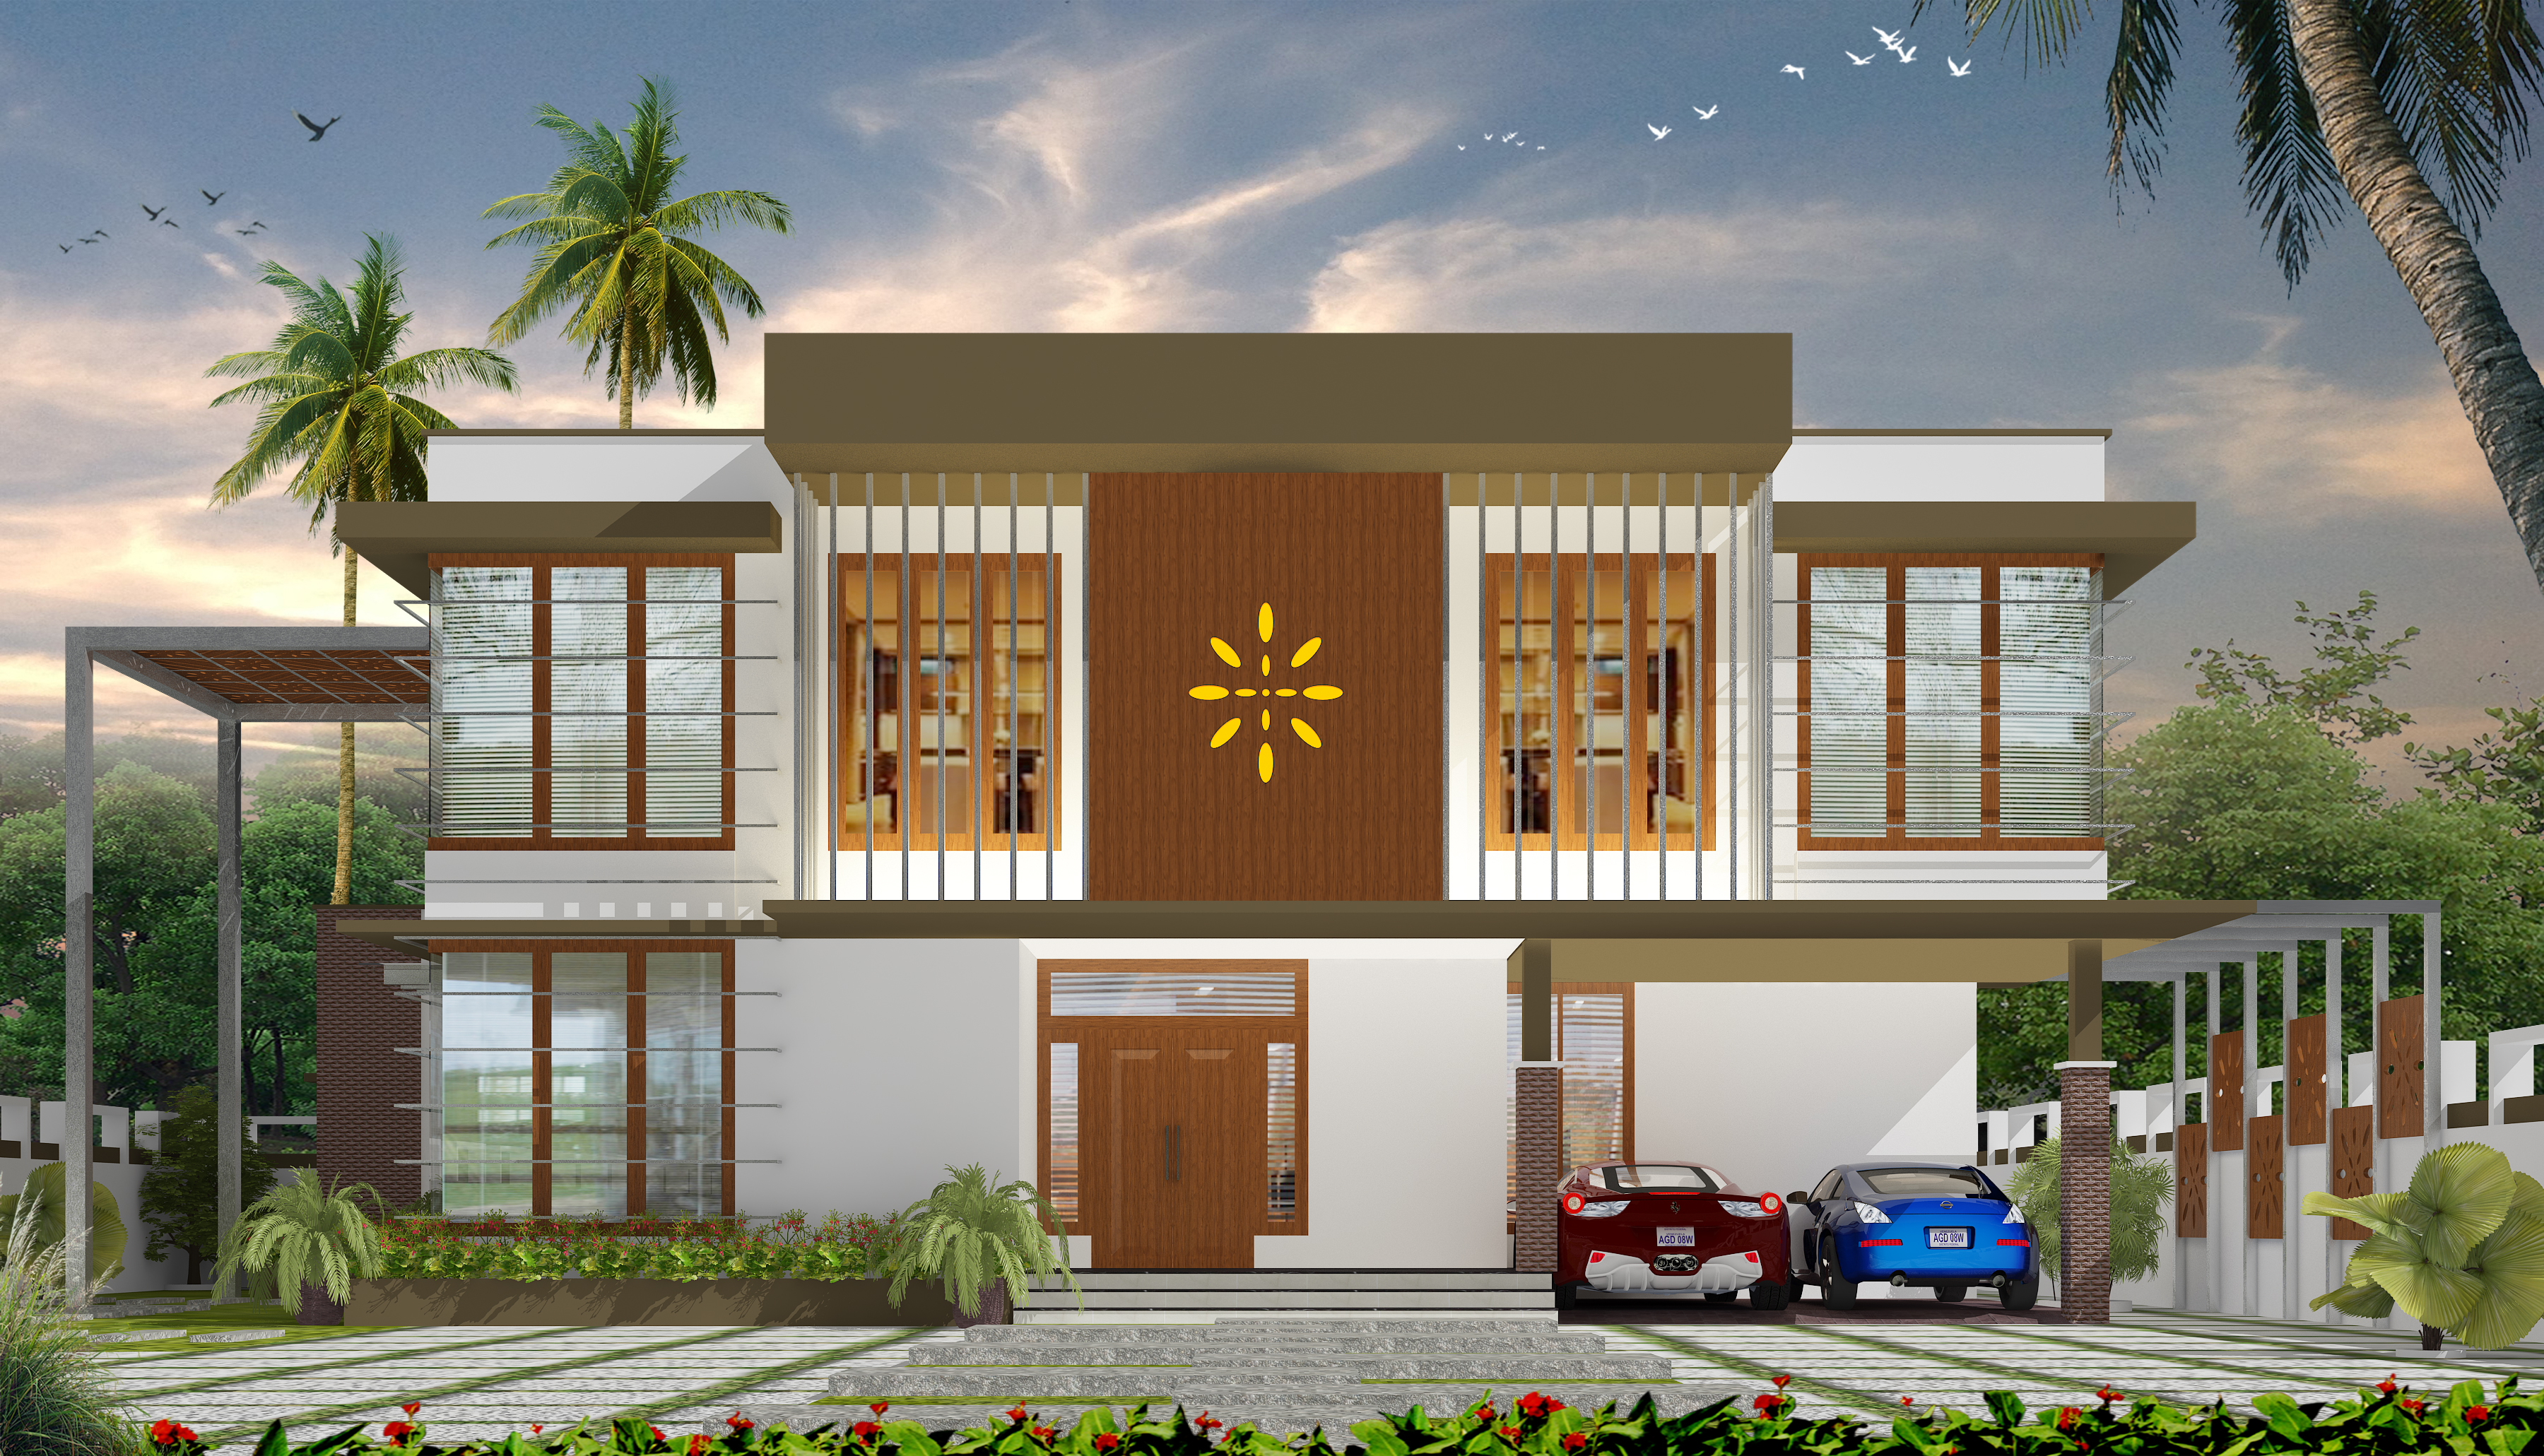 Residential Project for Dr.Shaji